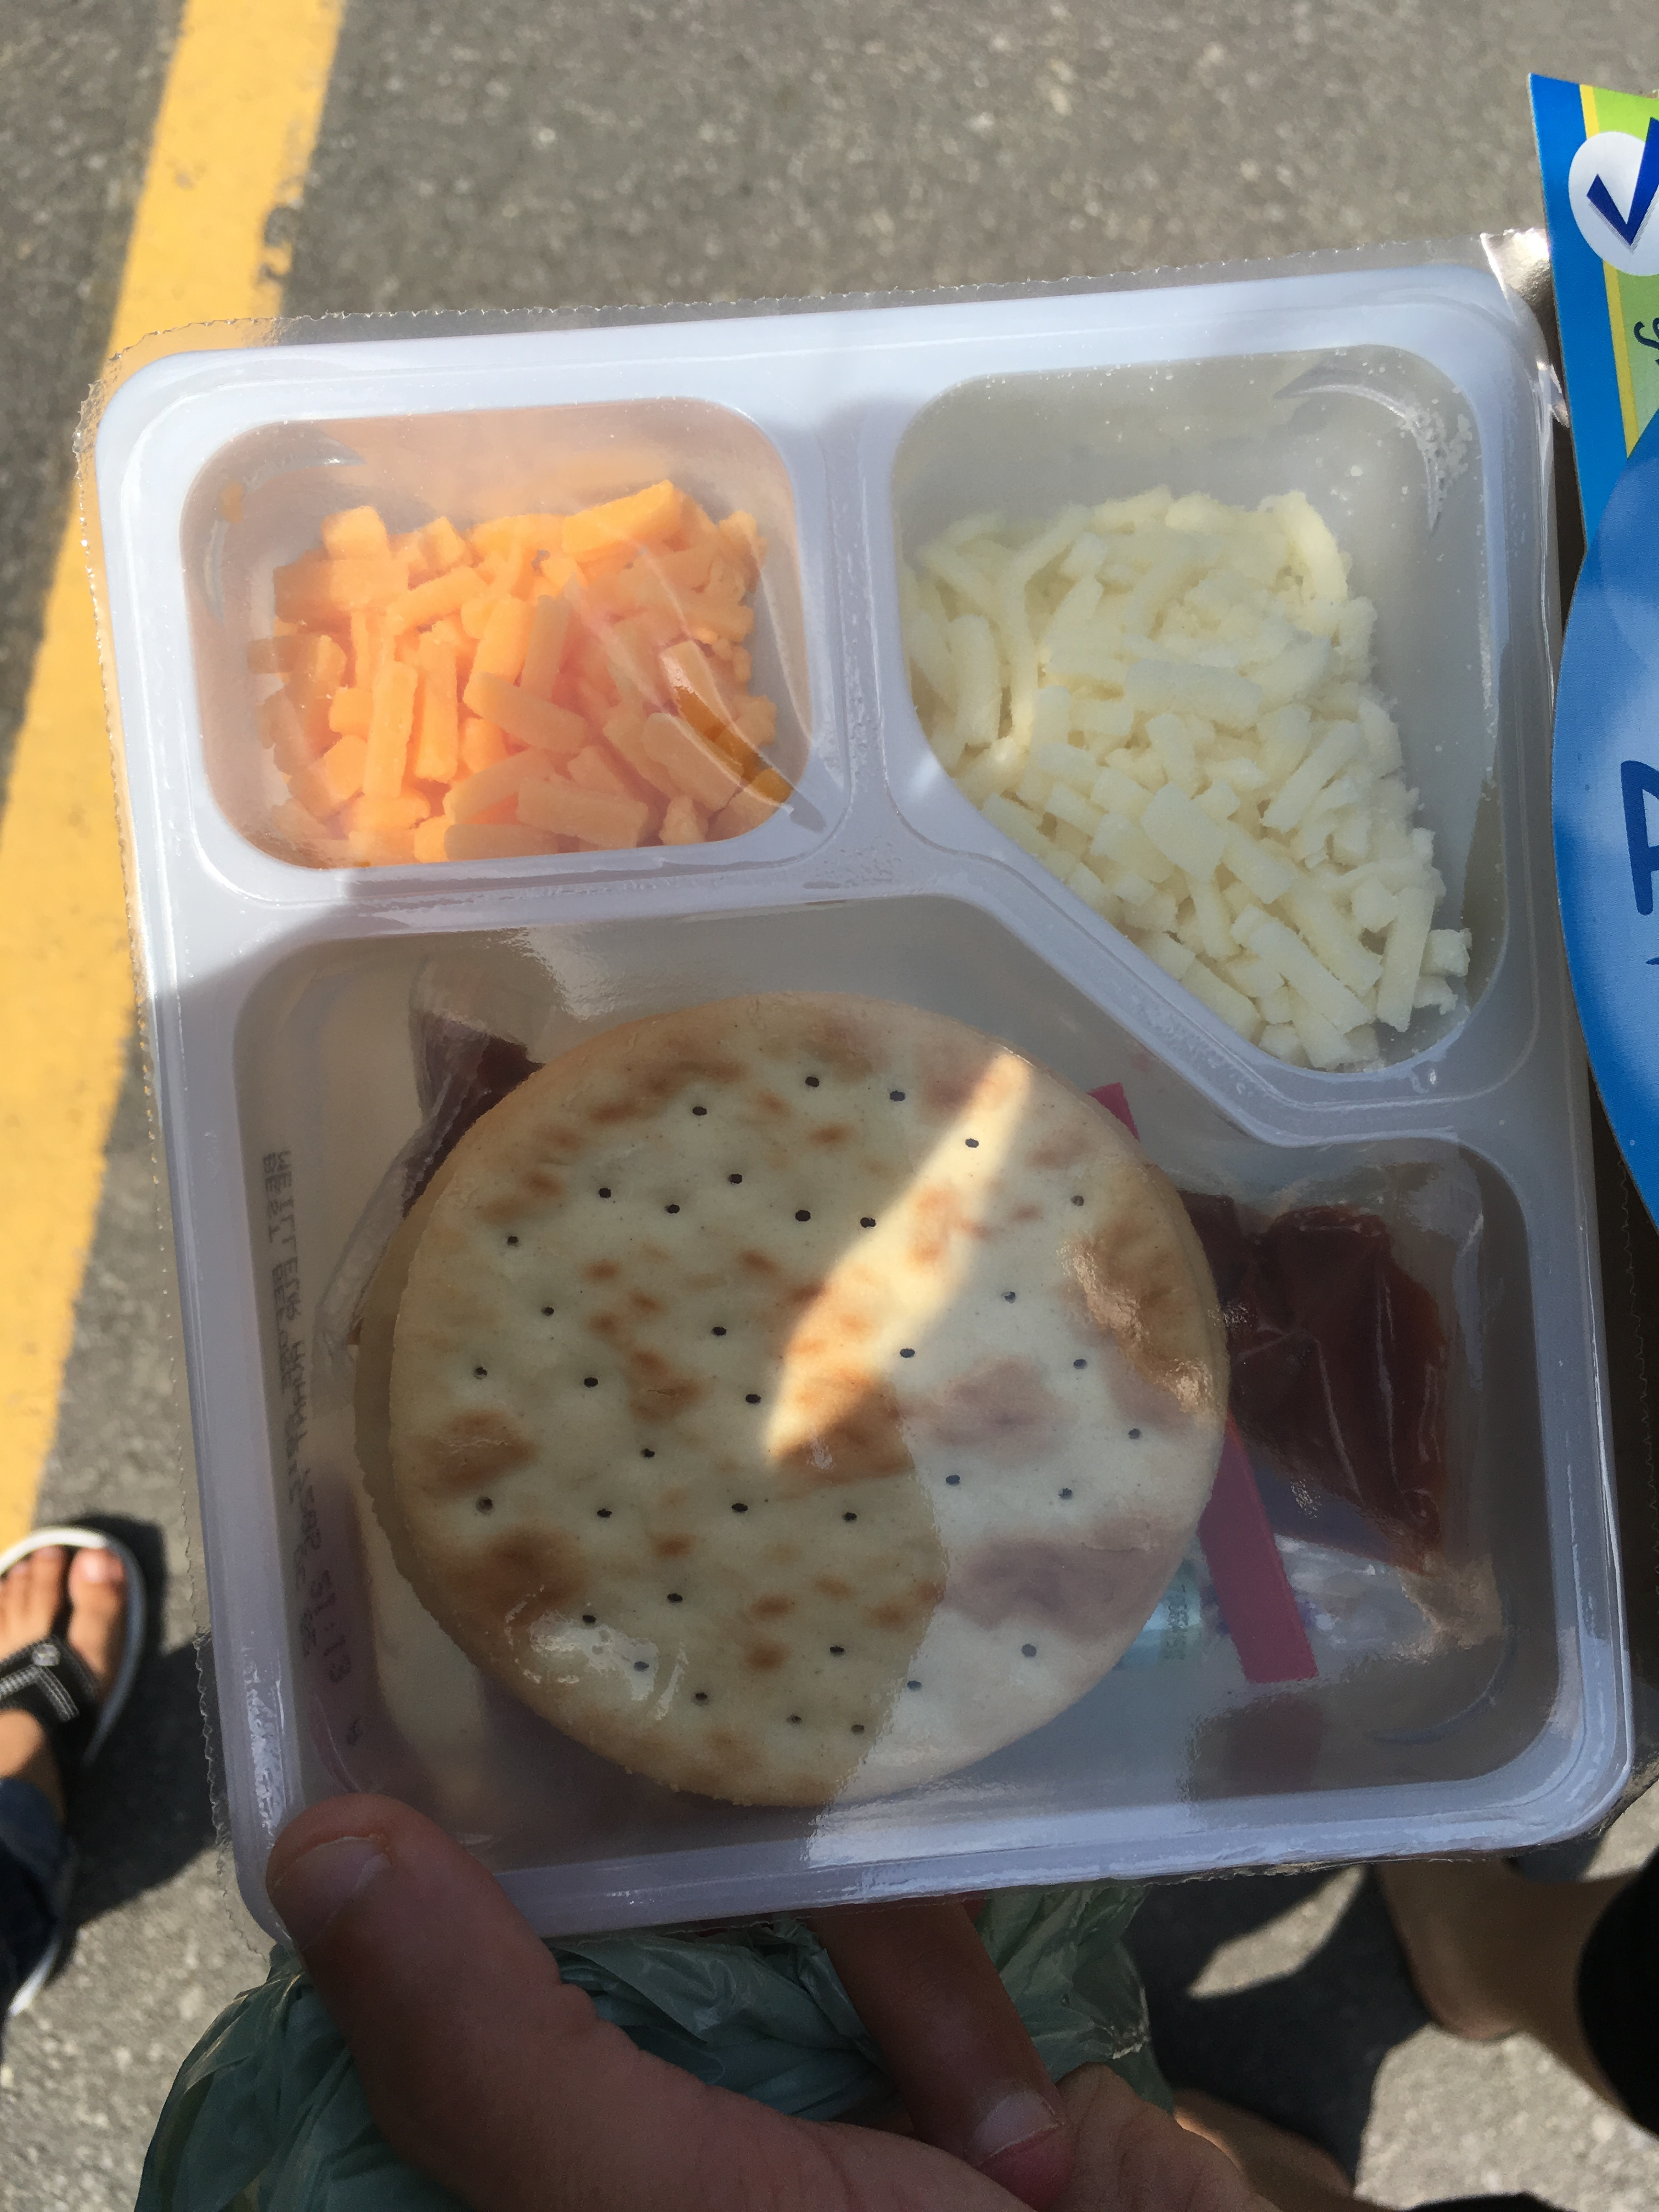 Schneiders 174 Lunch Mate Two Cheese Pizza Reviews In Snacks